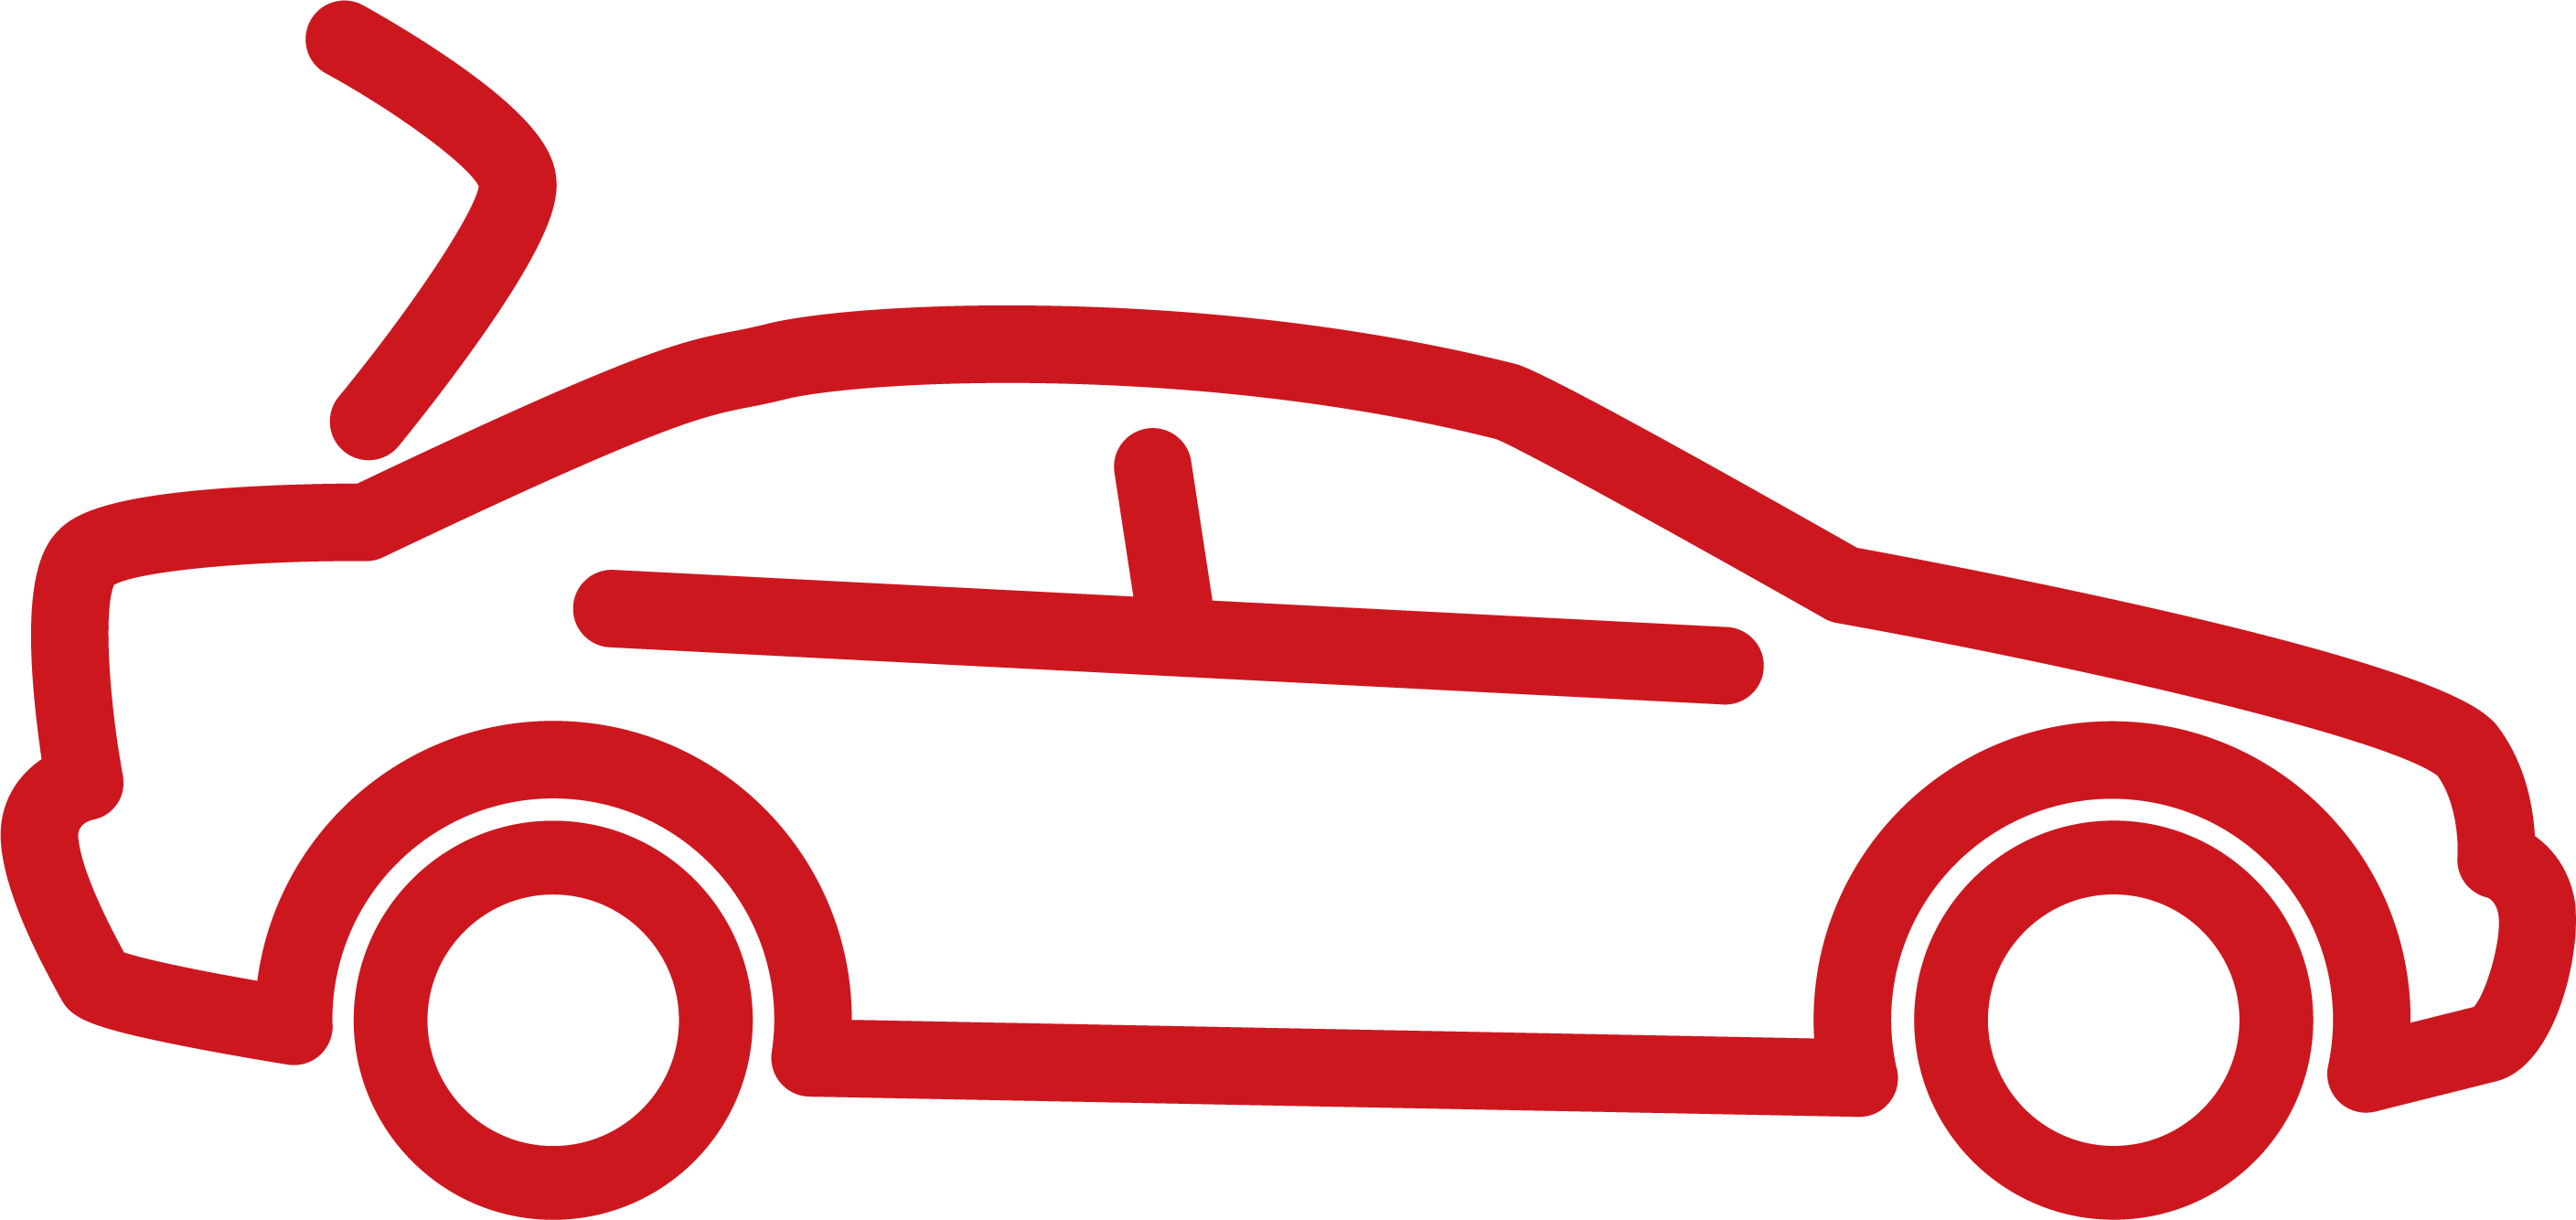 red car illustration